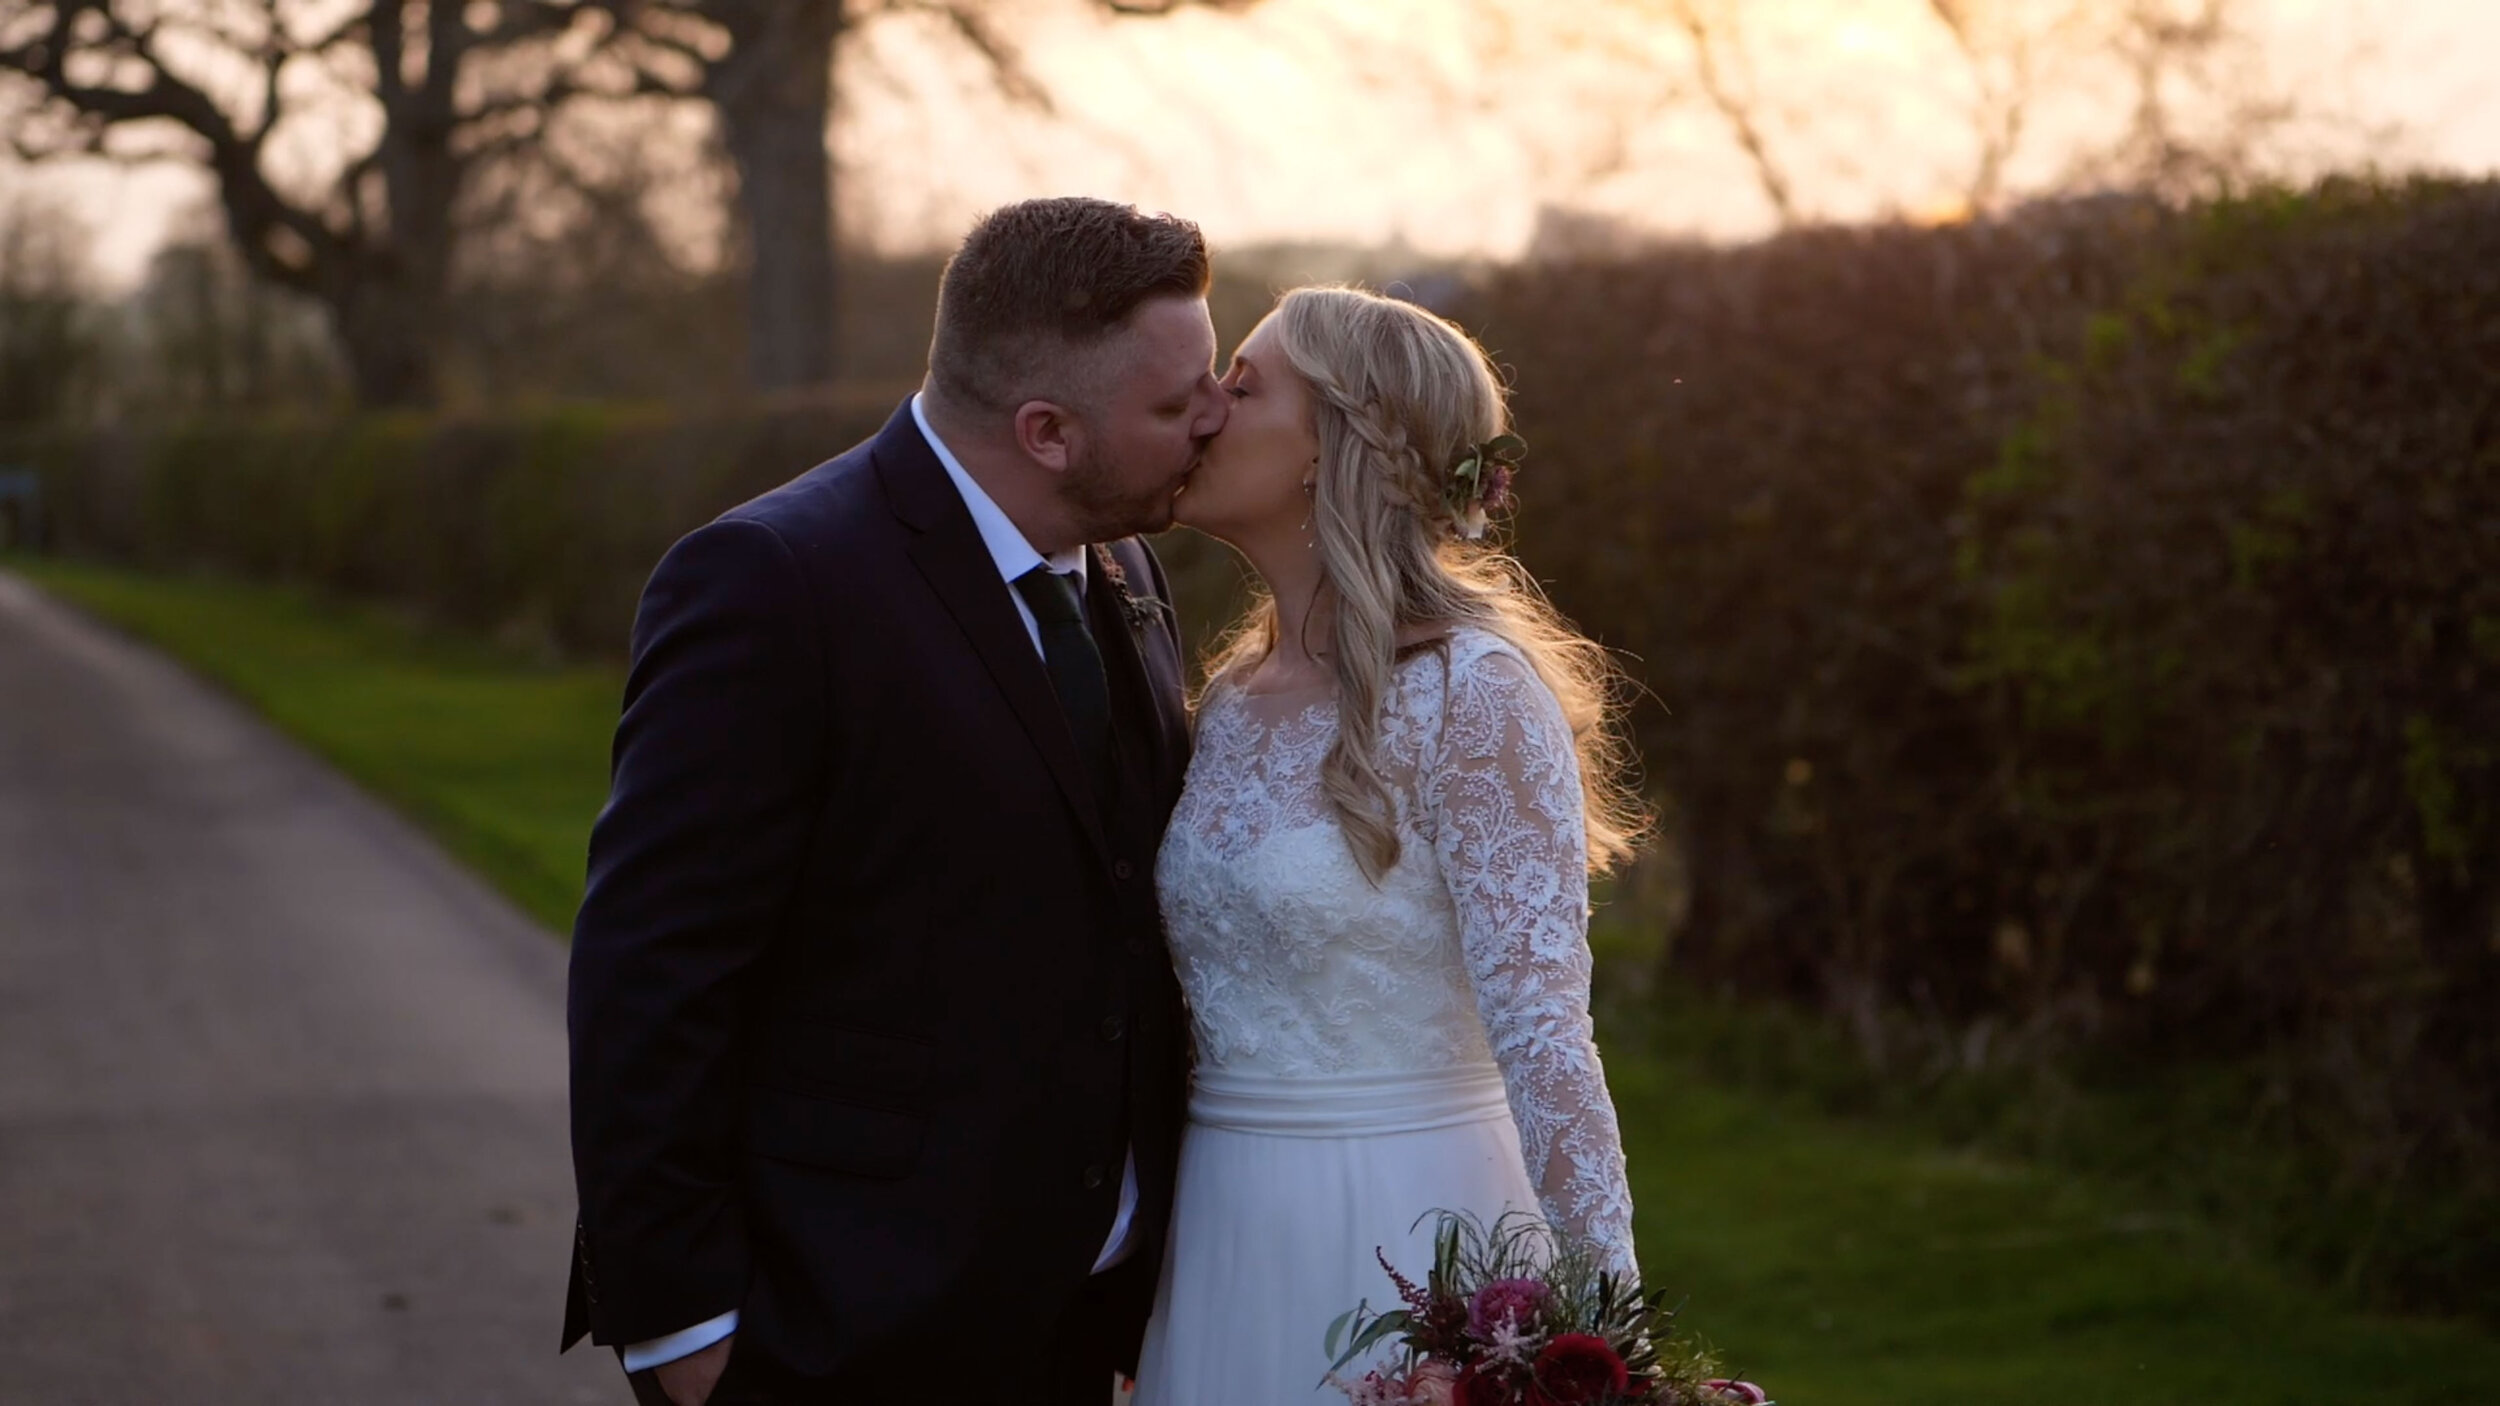 Susie and Tom share a kiss on a road beside their wedding venue, Eden Barn, Cumbria. The sunset glistens in the bride's hair, as the couple look inseparable.